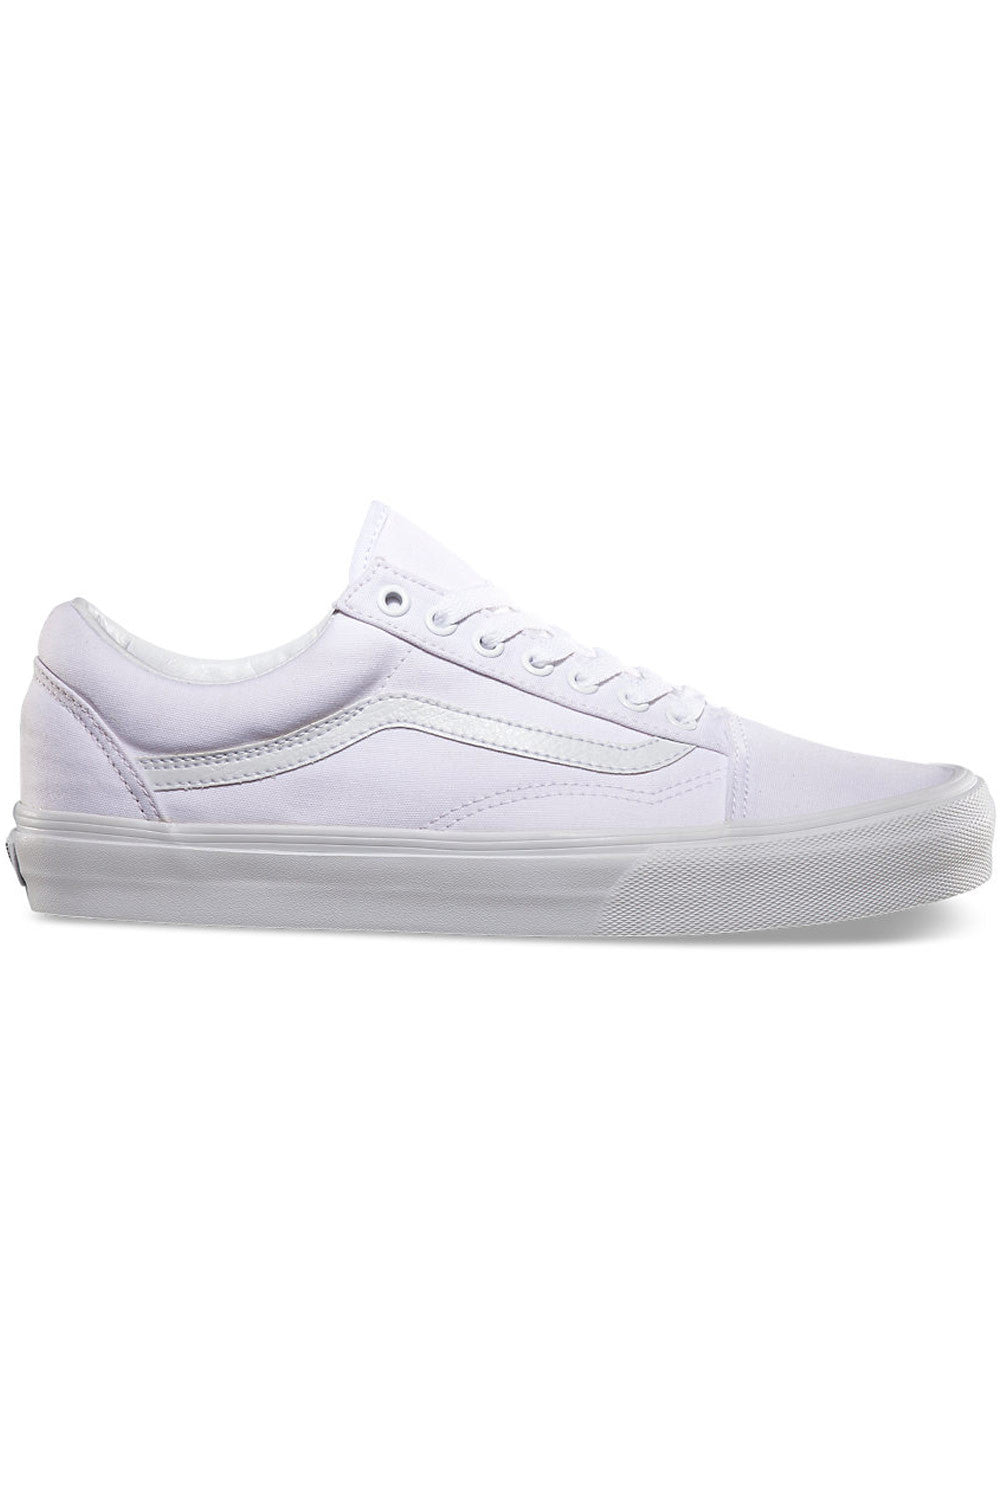 71209b60108 Vans Old Skool Classic Shoes – Mainland Skate   Surf